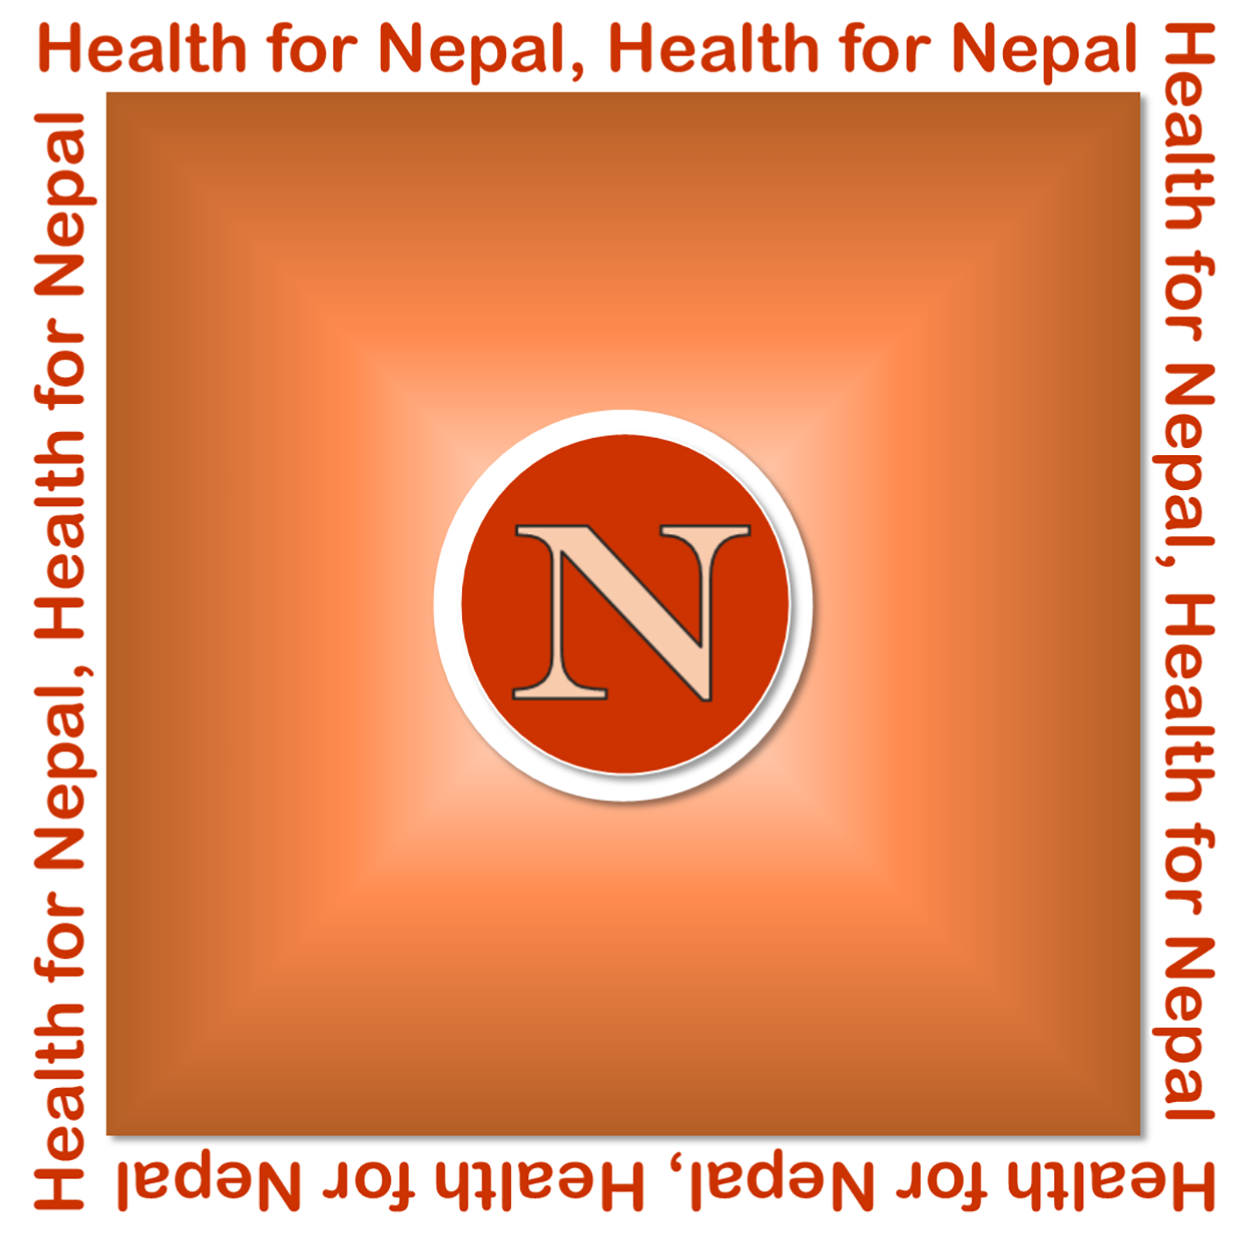 Stichting Health for Nepal